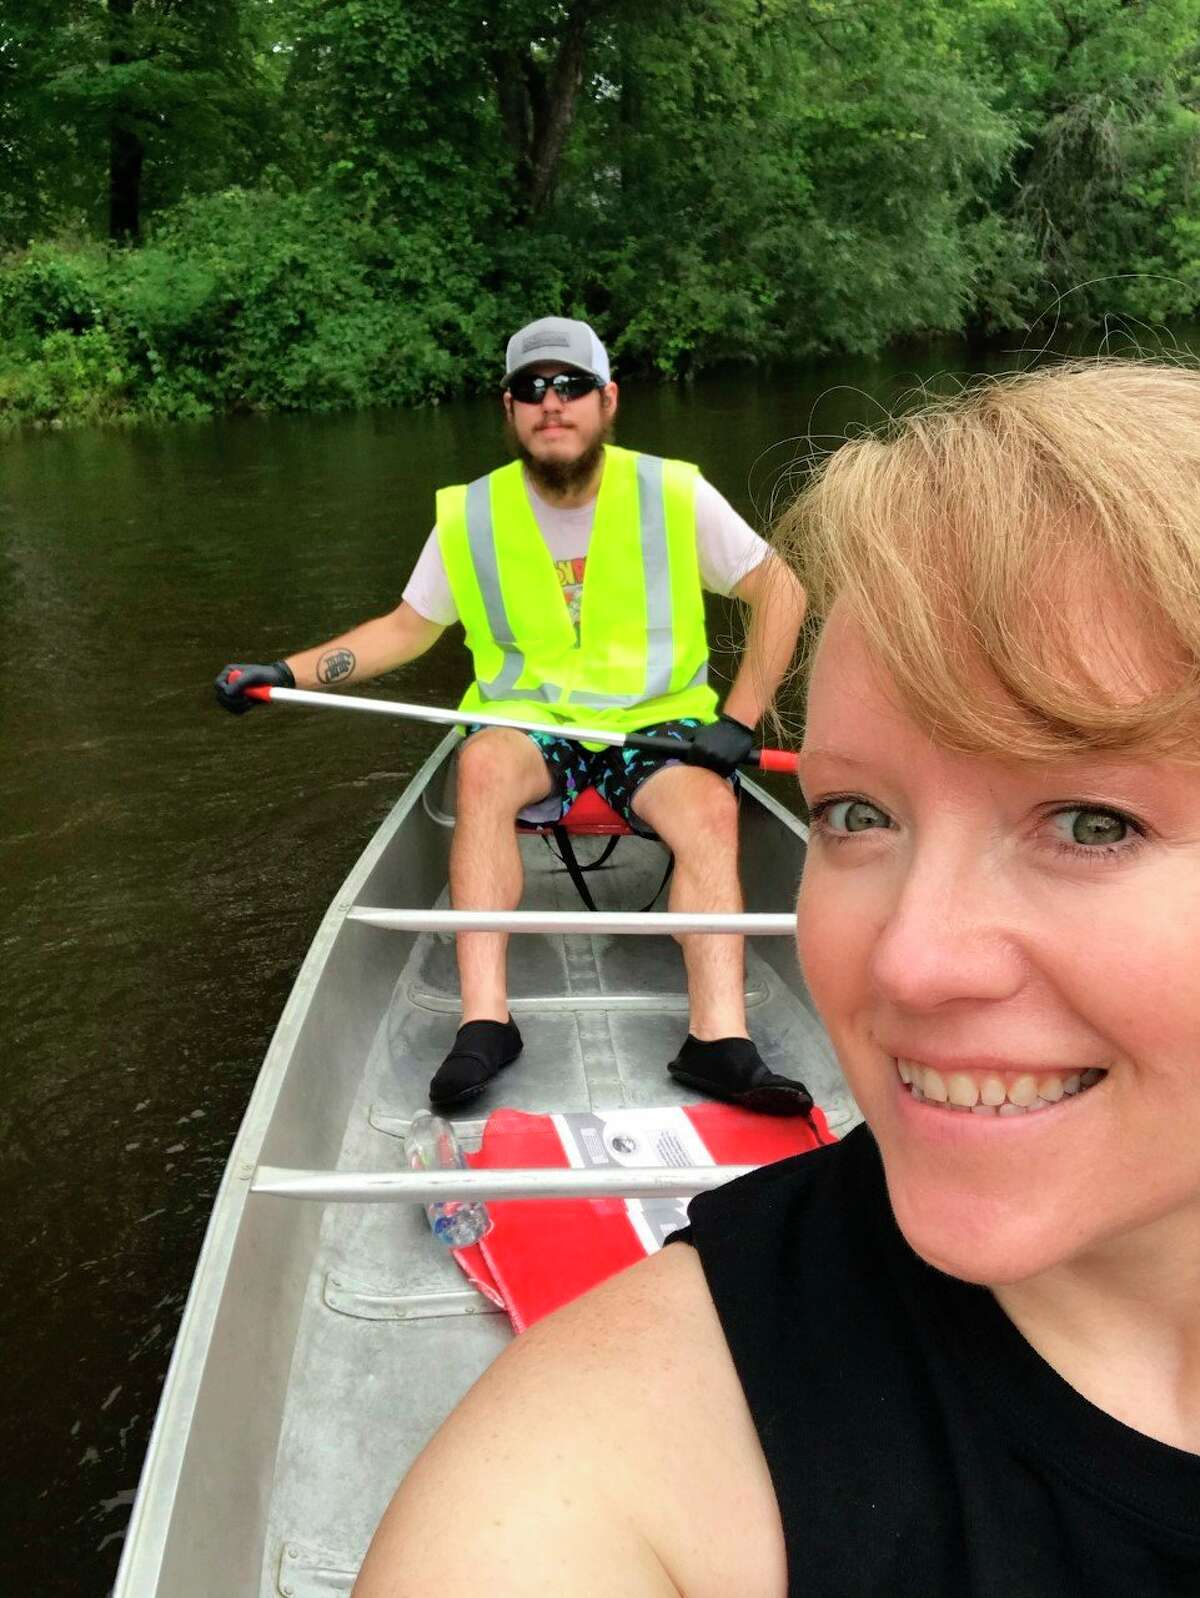 Lume volunteers float the river to pick up trash during the Muskegon River Trash Bash in Evart last week. (Submitted photo)